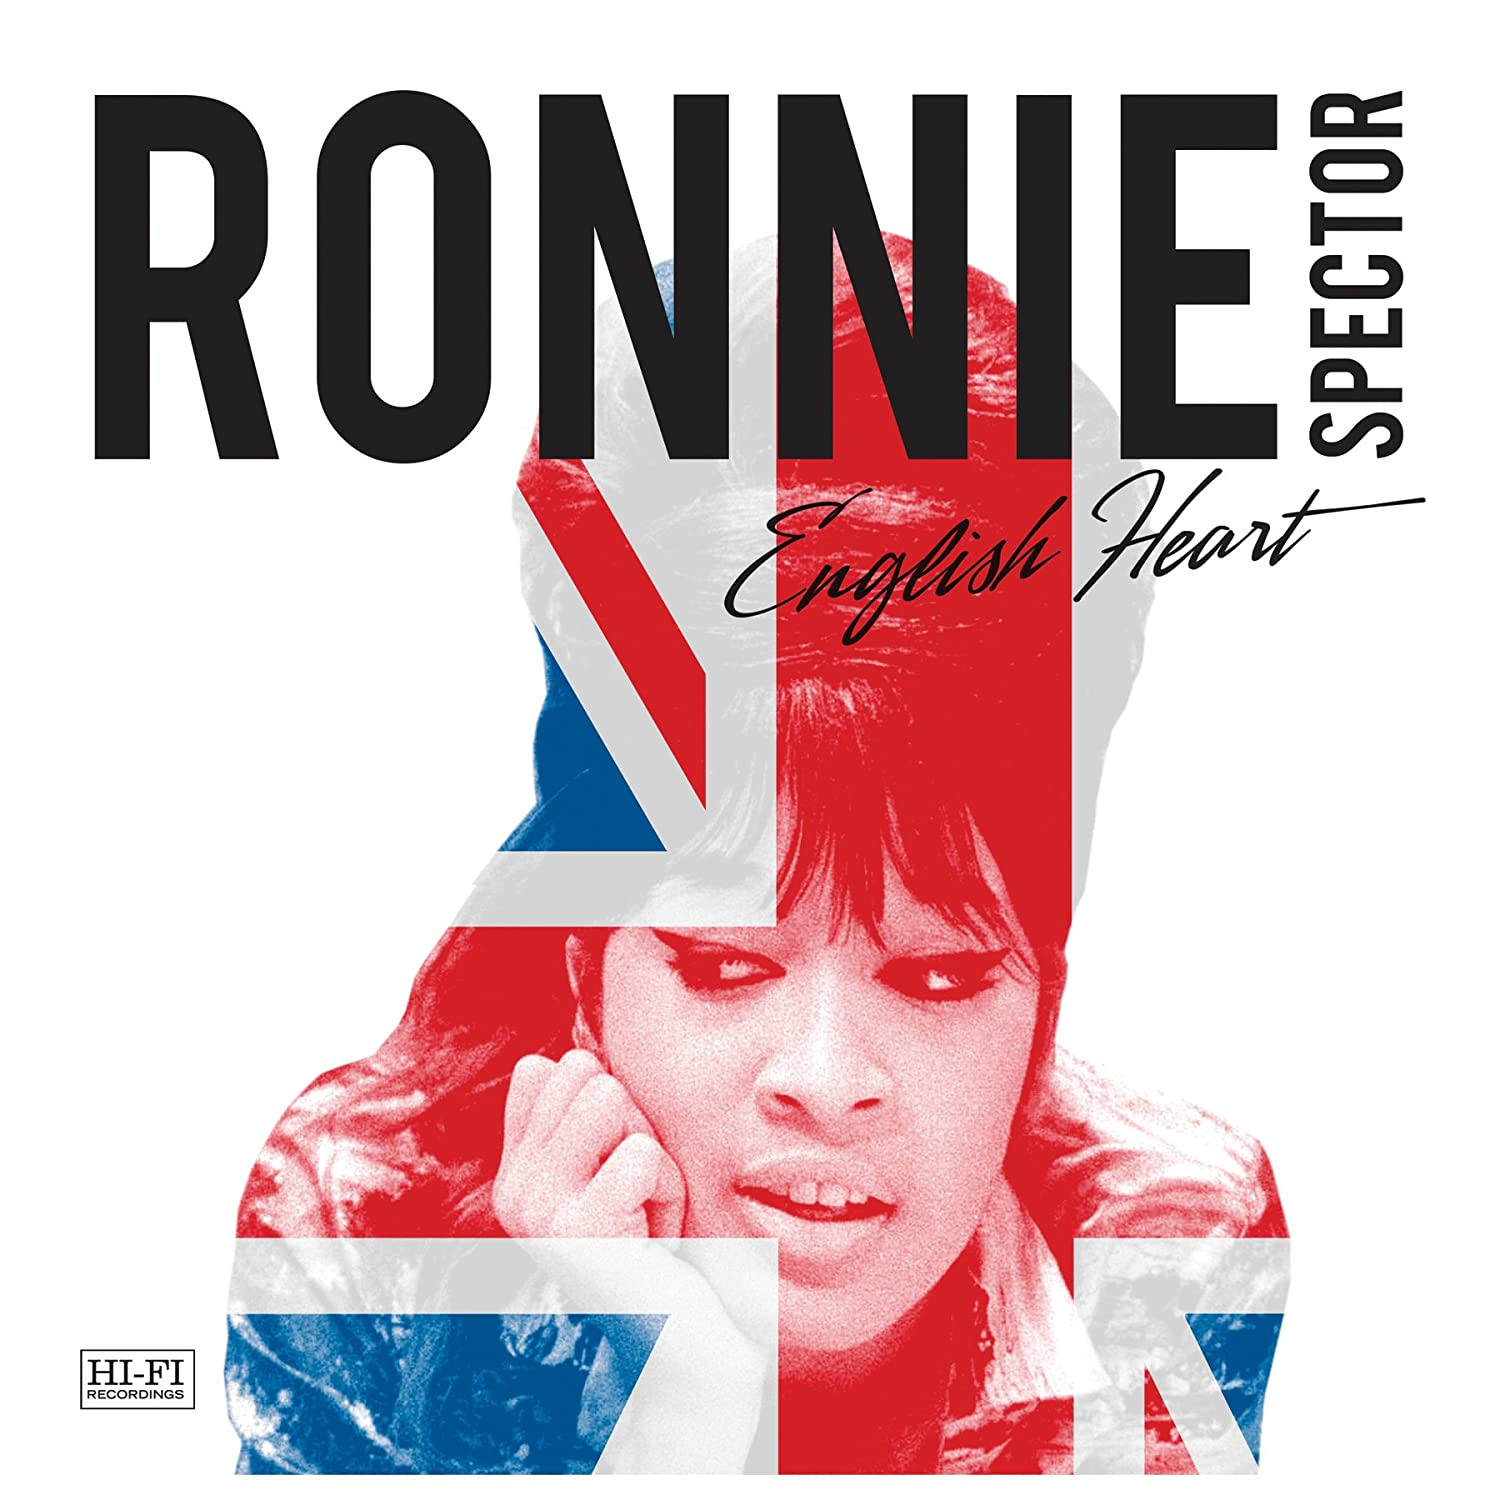 English Heart (Amazon Exclusive Deluxe CD/DVD)